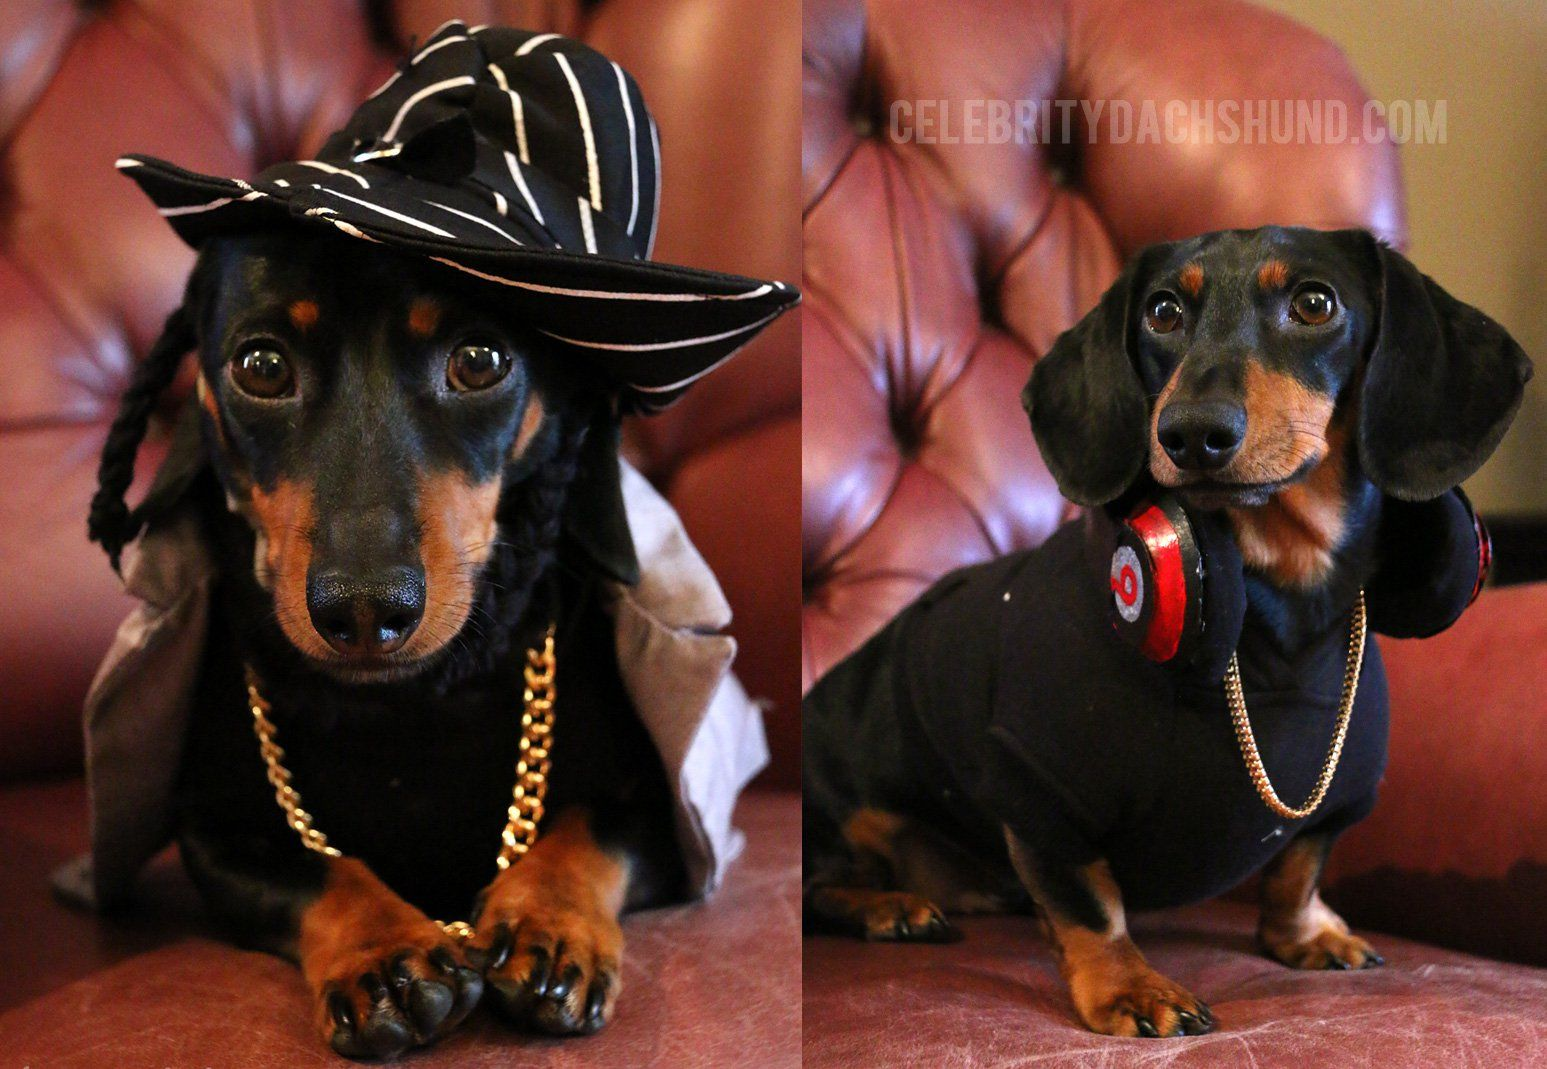 dr. dre and snoop dogg dog costumes | dachshund | dogs, dachshund